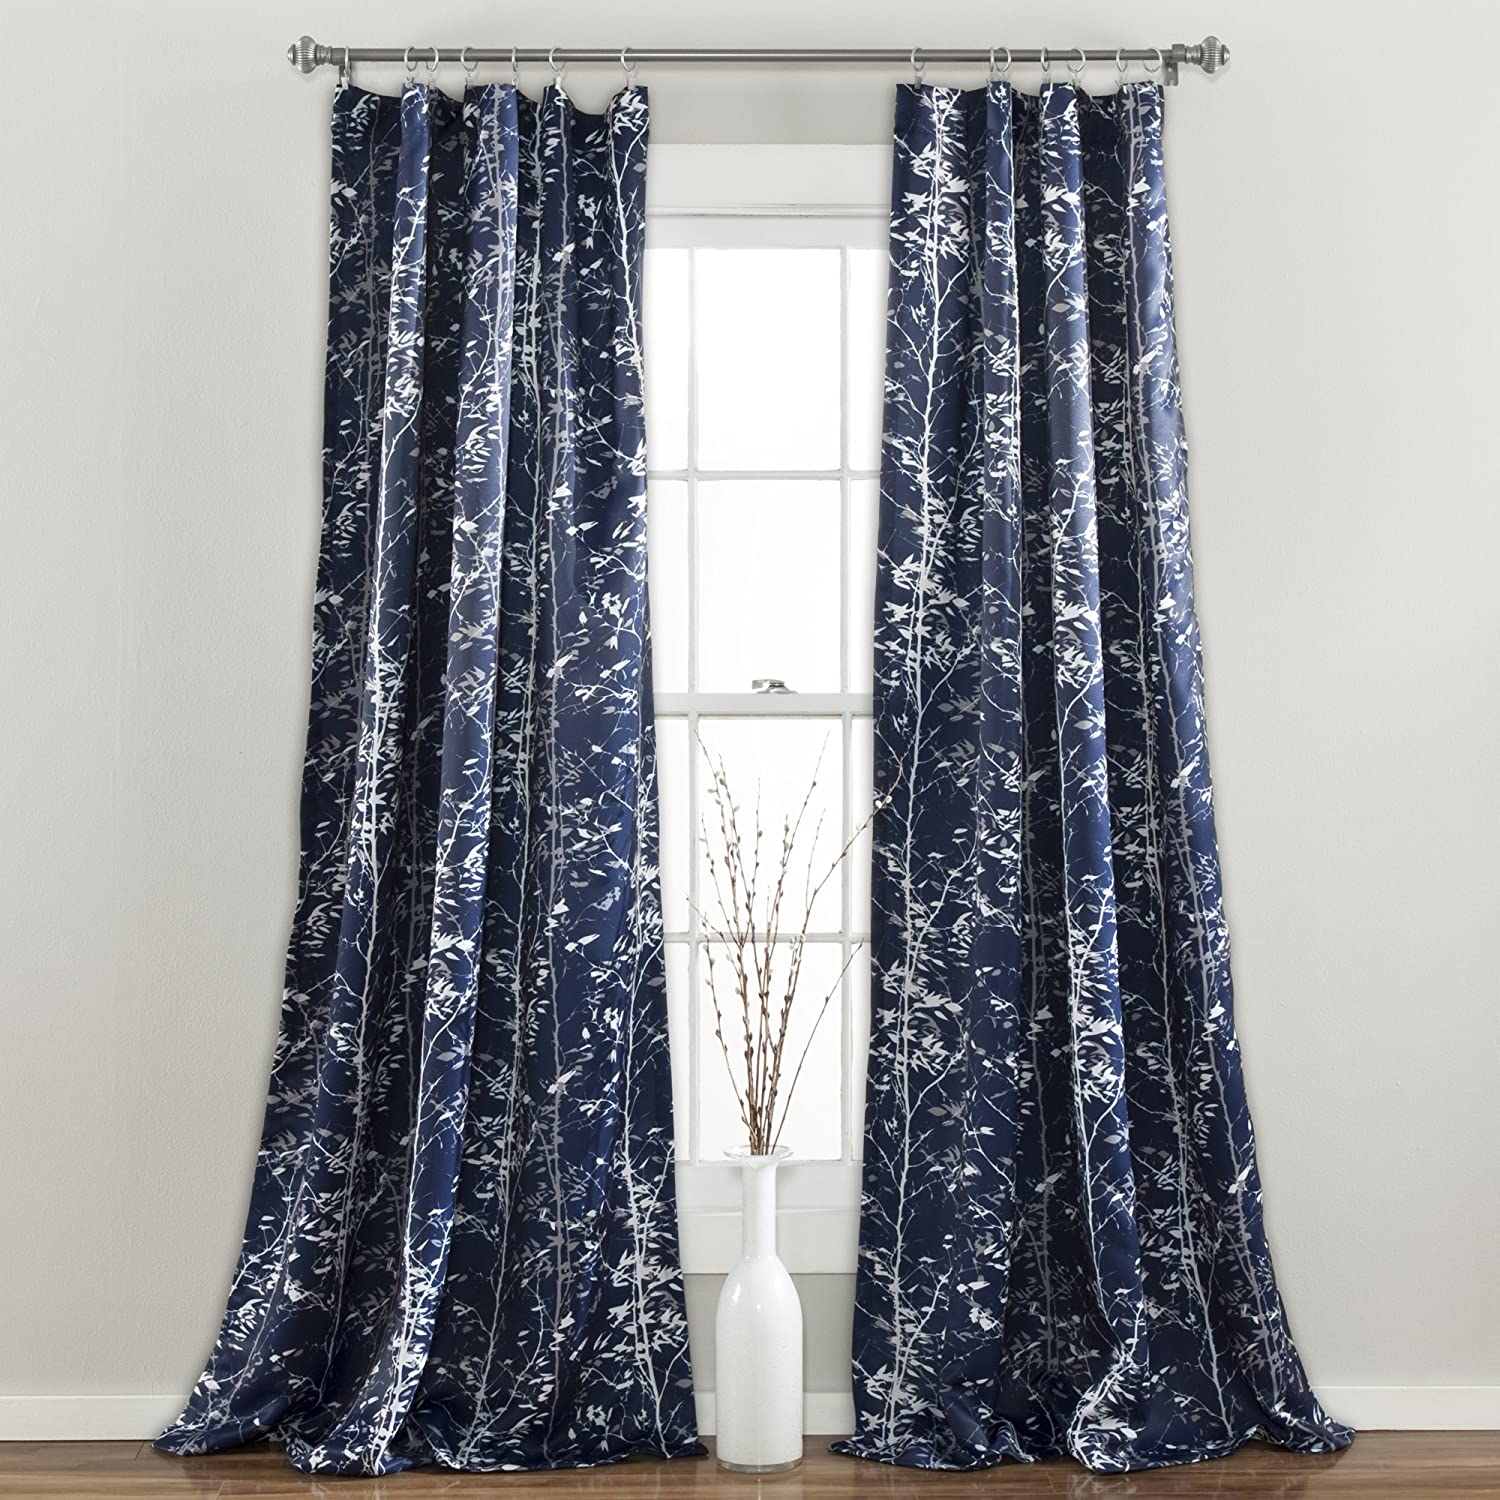 "Lush Decor, Navy Forest Curtains Tree Branch Leaf Darkening Window Panel Drapes Set for Living, Dining, Bedroom (Pair), 108"" x 52"""